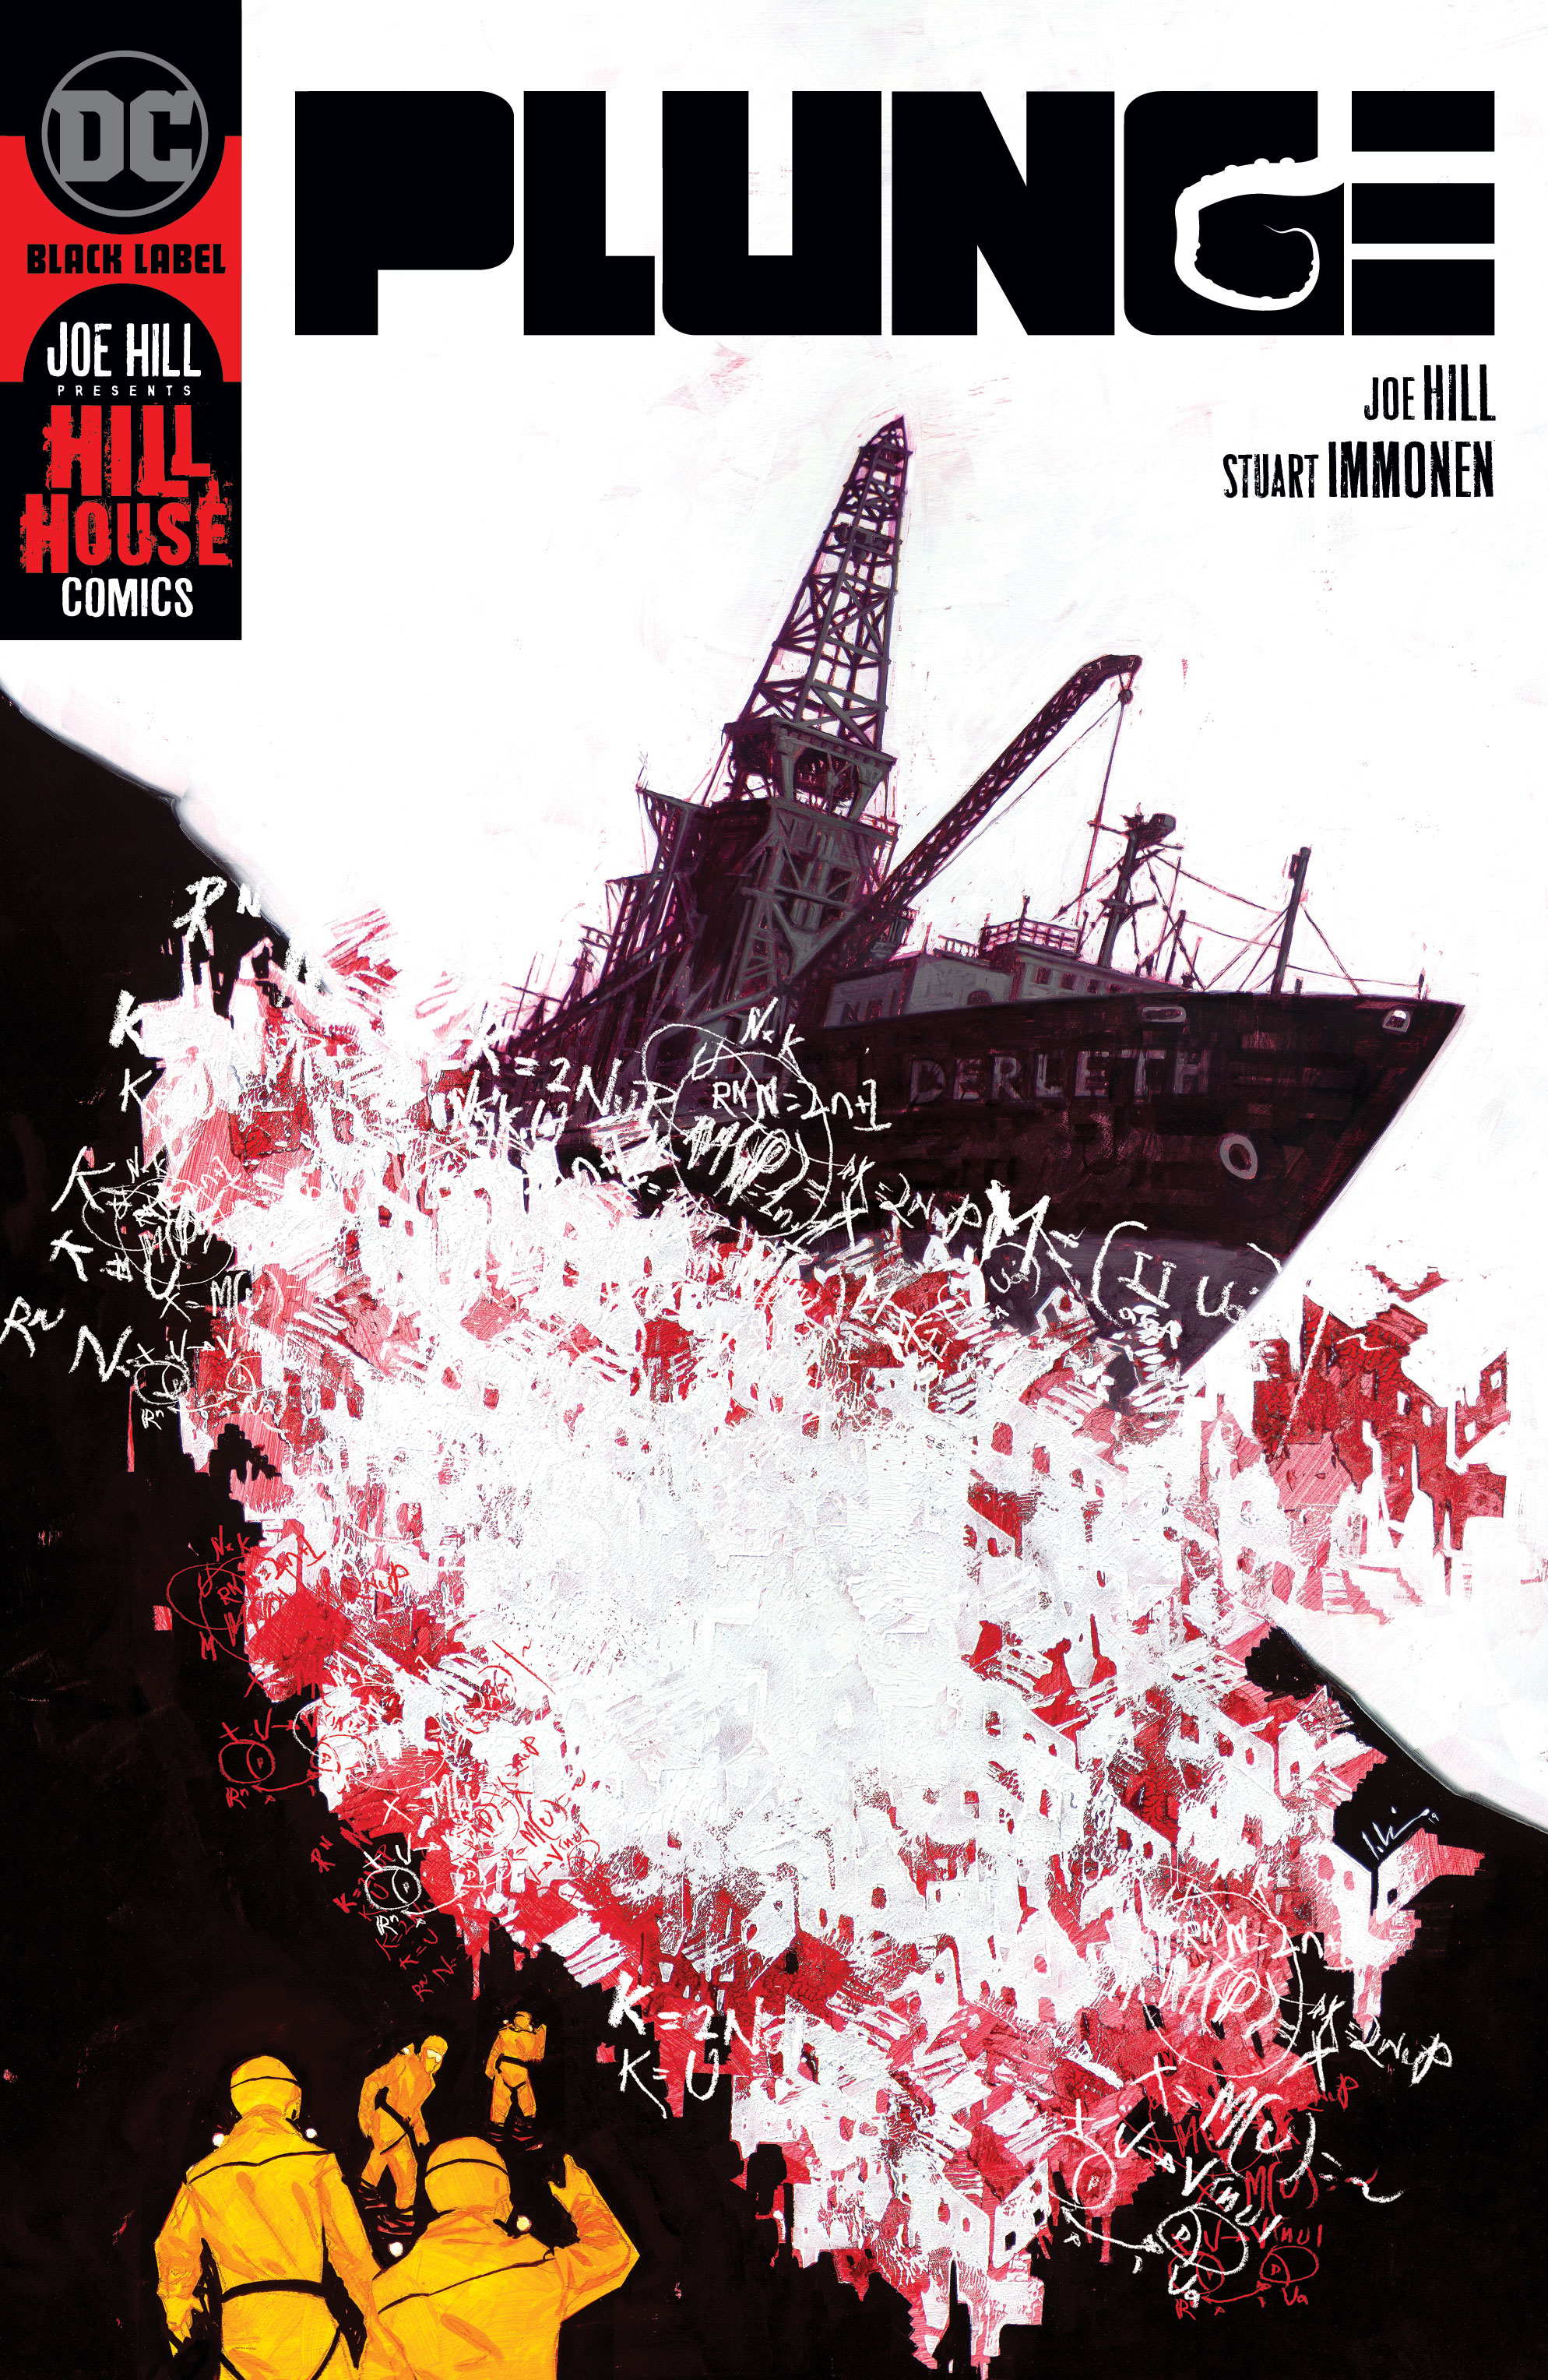 Joe Hill and Stuart Immonen Plunge to the Depths of Terror | DC